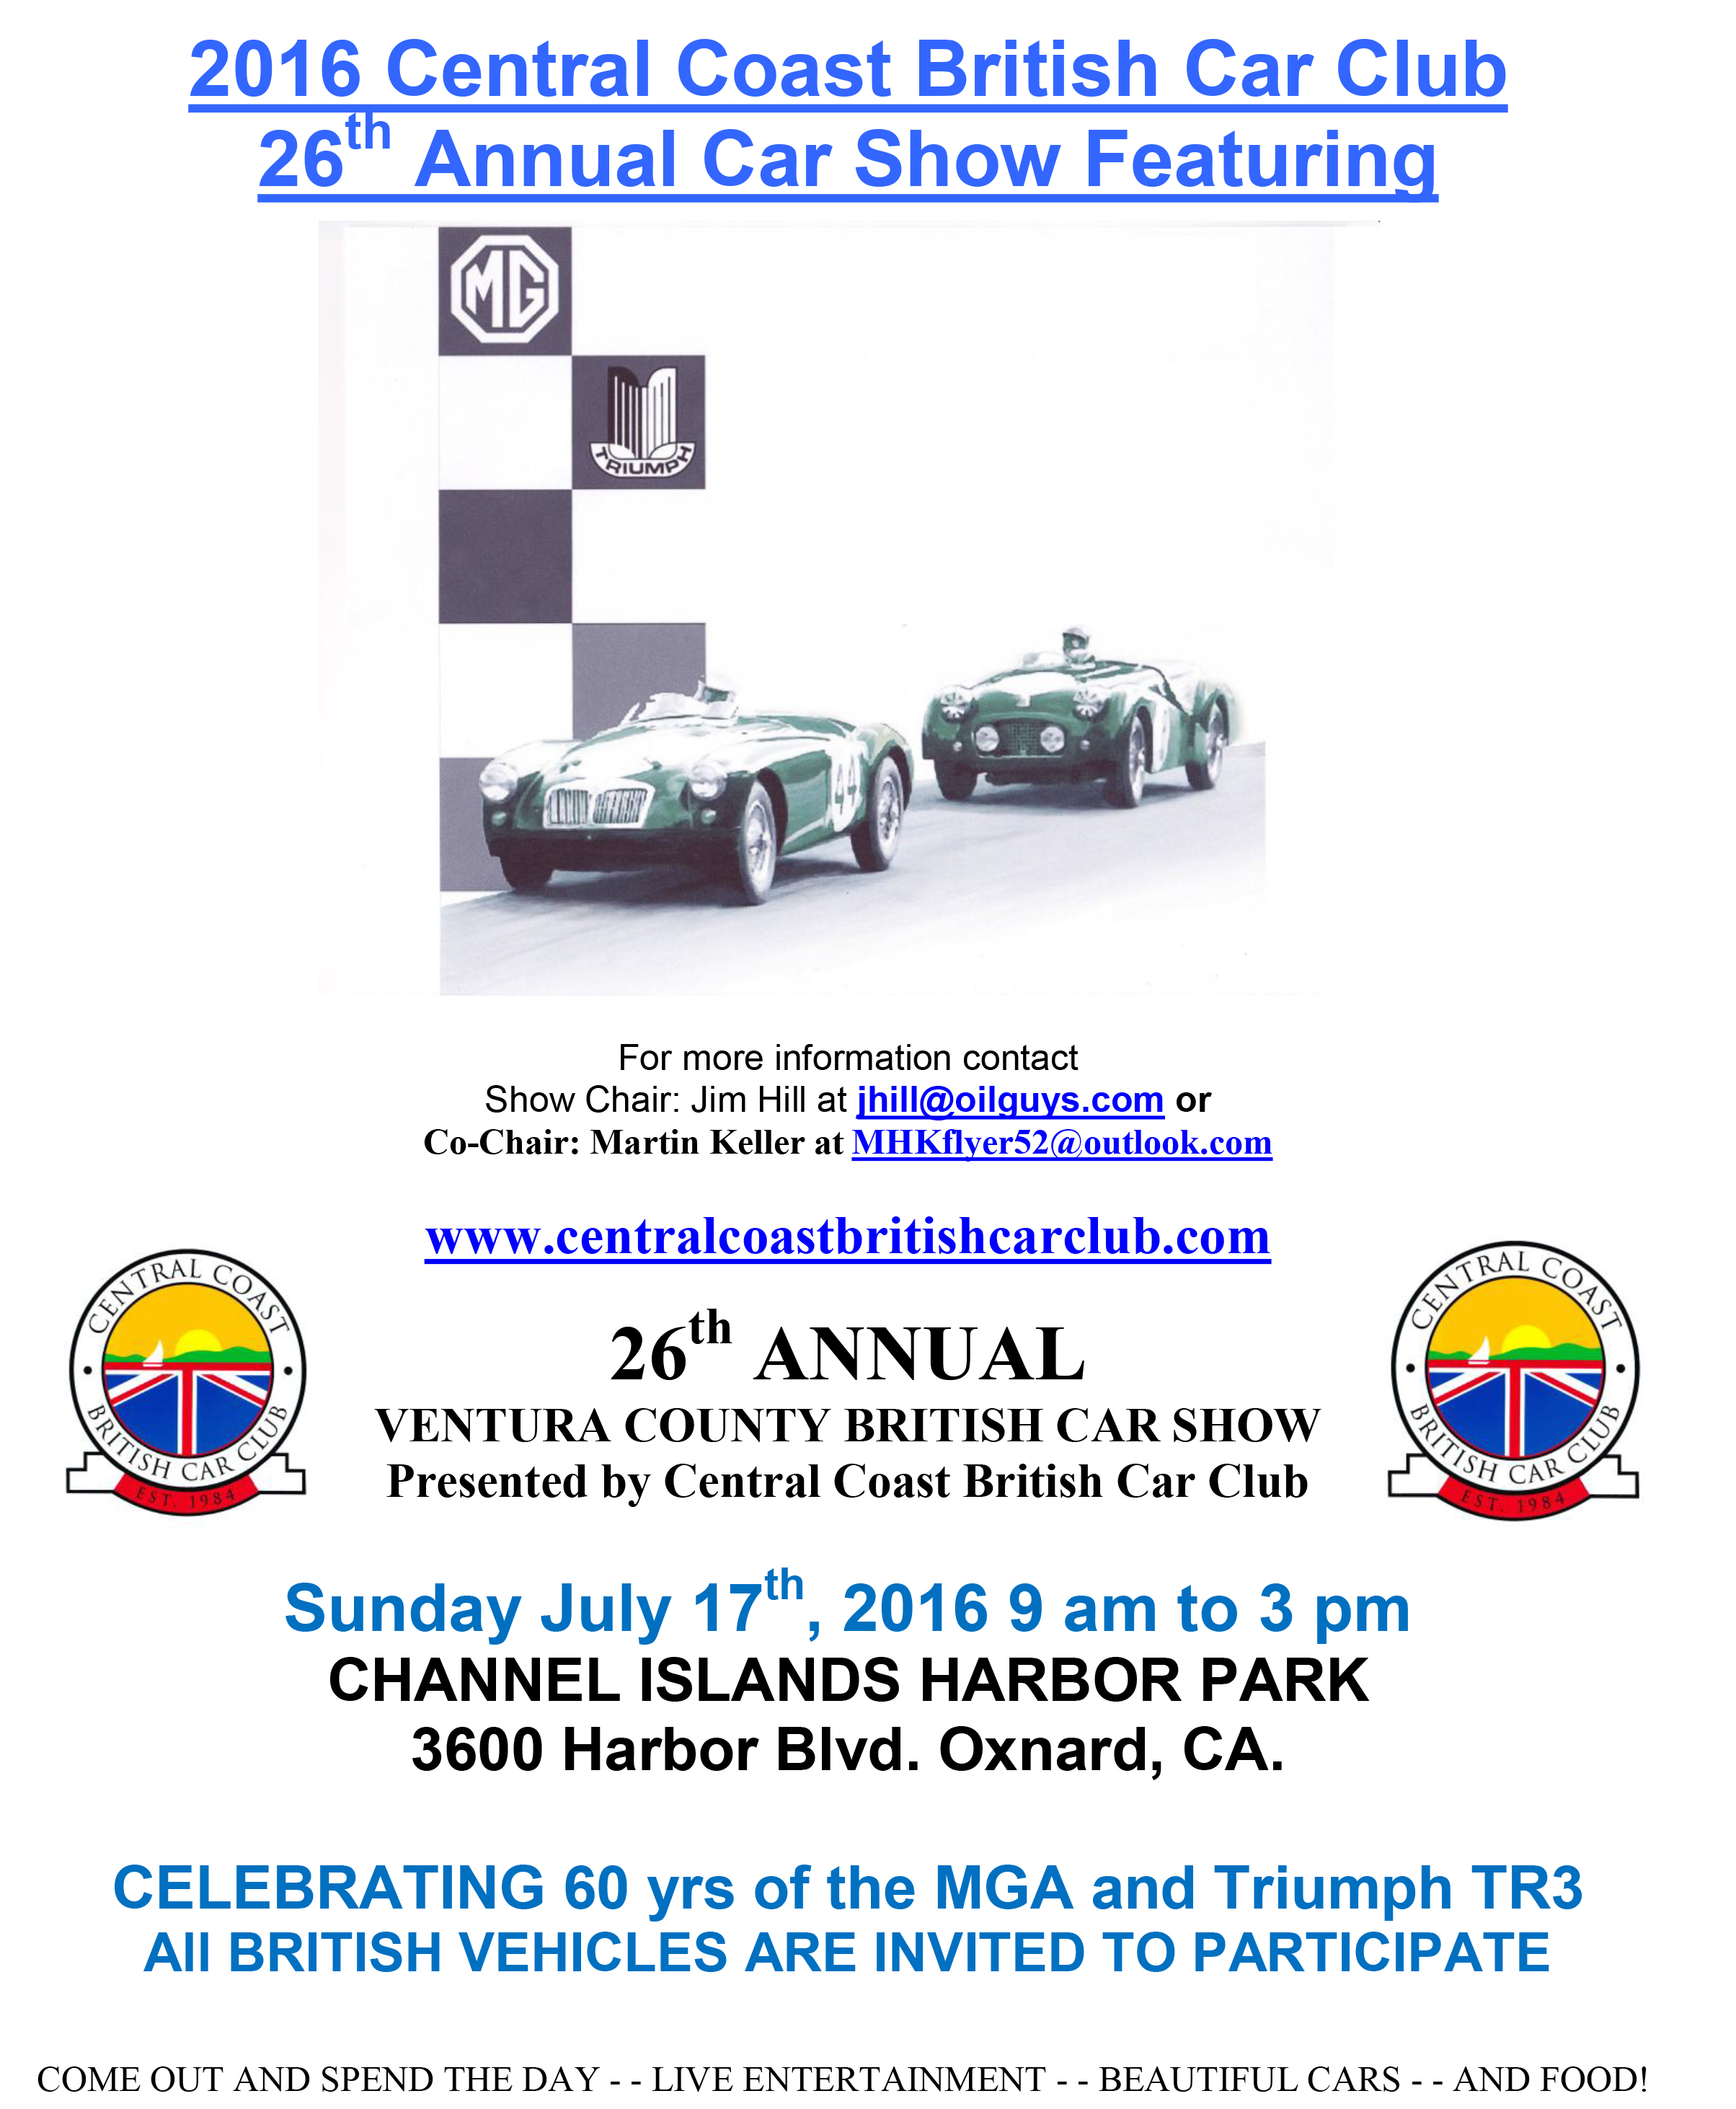 26th Annual CCBCC 2016 Car Show